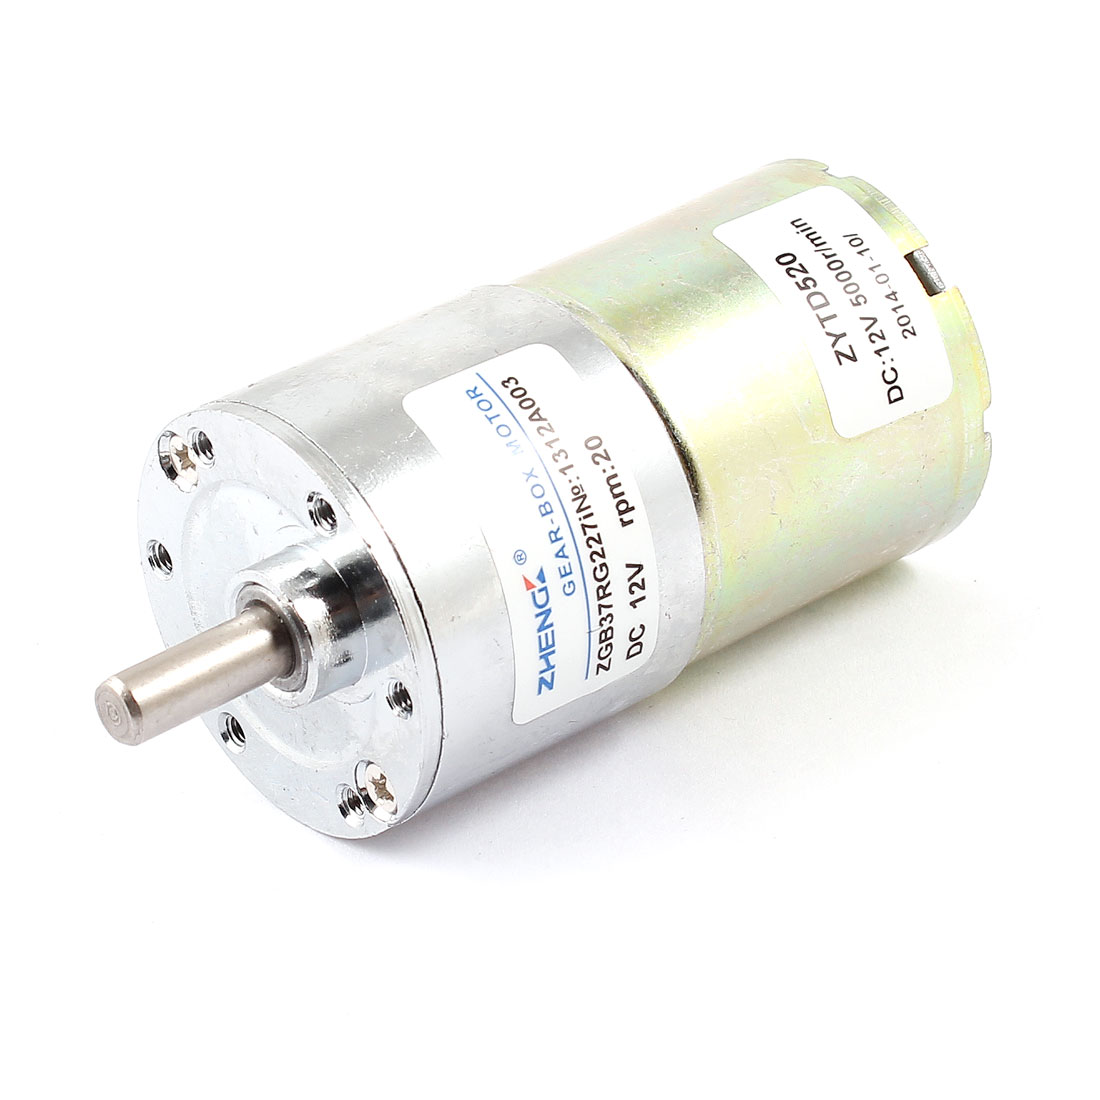 Shaft Diameter 6mm x 15mm DC 12V 20 RPM Speed 6mm Dia Shaft Magnetic Gearbox Electric Geared Motor 37mm x 86mm 3d пазл expetro голова африканского буйвола 10631